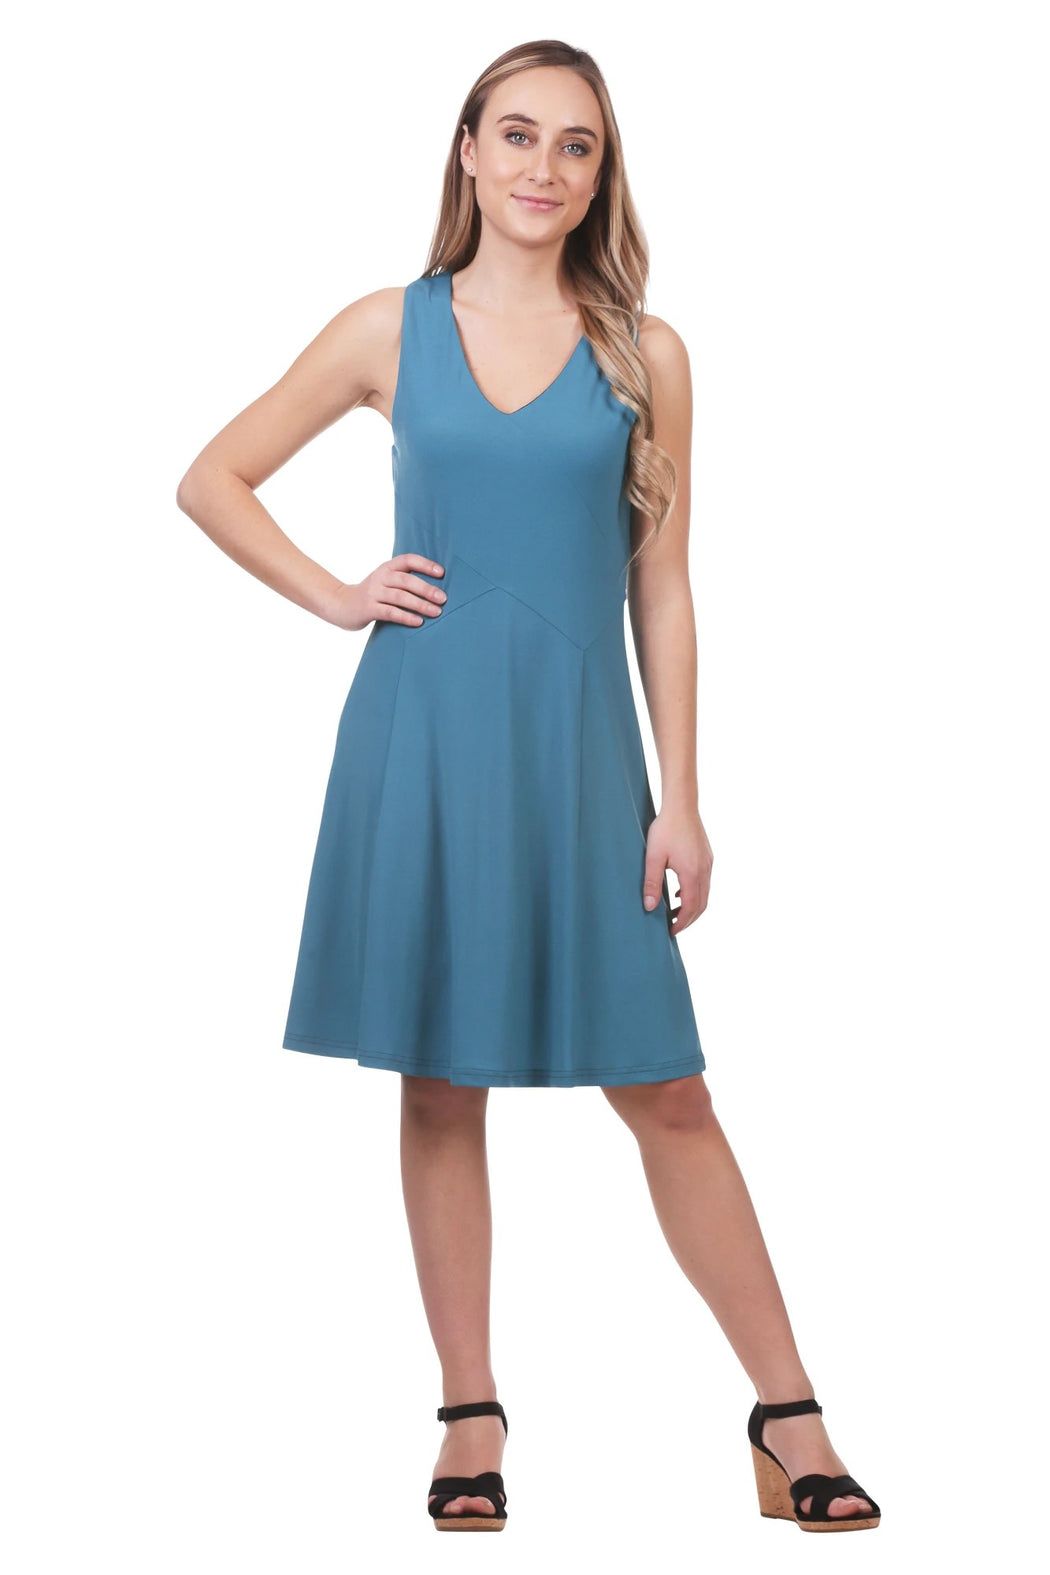 Our Cross Over Panel A-Line Dress is the ideal throw-on, go-anywhere dress. It features a soft and stretchy fabric that is so comfortable, it will make you want to wear it form sun up to sundown. Its elegant form fitting design gives you the shape you want while offering a comfortable fit. Designed with every body type in mind, this dress looks so flattering on many body types.